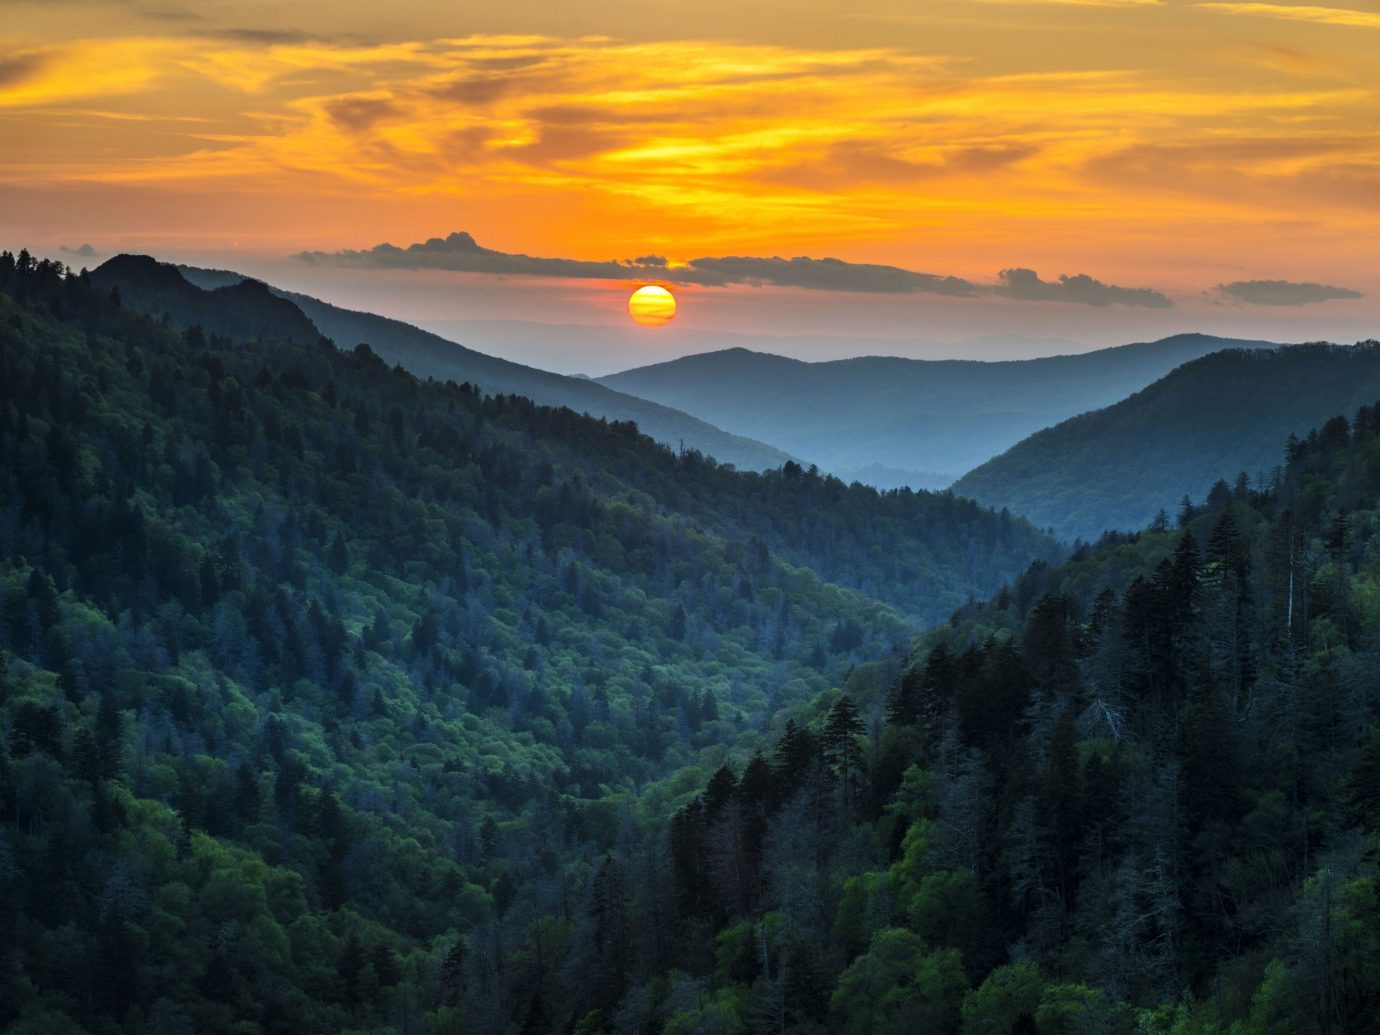 National Parks Outdoors + Adventure Trip Ideas mountain outdoor sky mountainous landforms Nature wilderness geographical feature atmospheric phenomenon sunrise mountain range Forest morning cloud dawn Sunset landscape canyon ridge valley hill plateau hillside